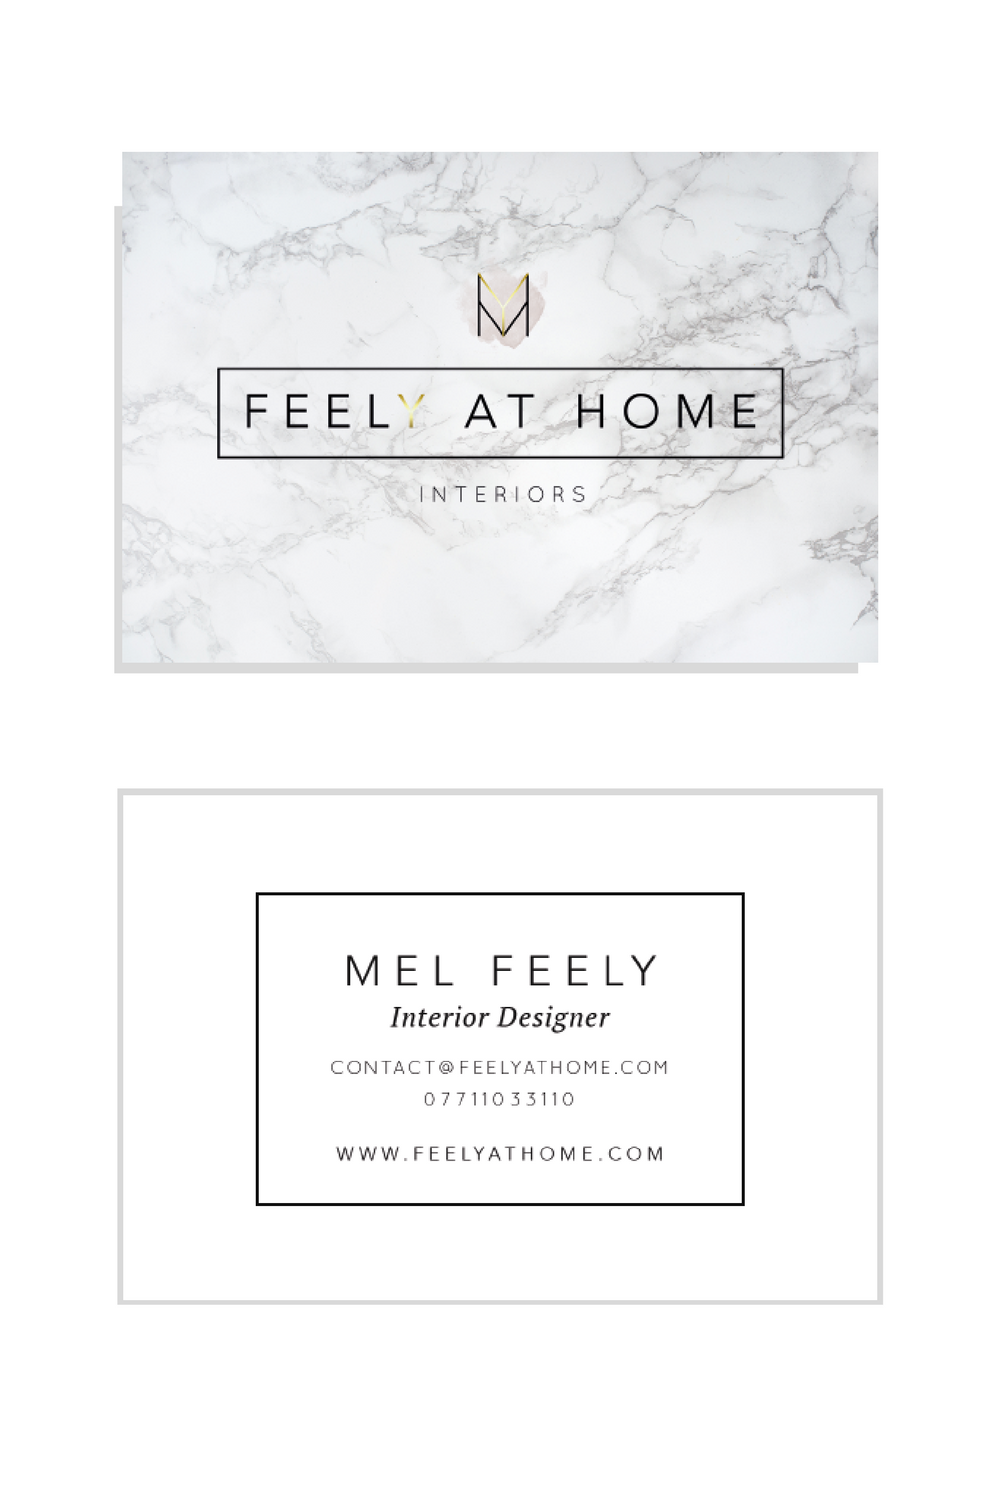 Feely at Home business cards | byRosanna